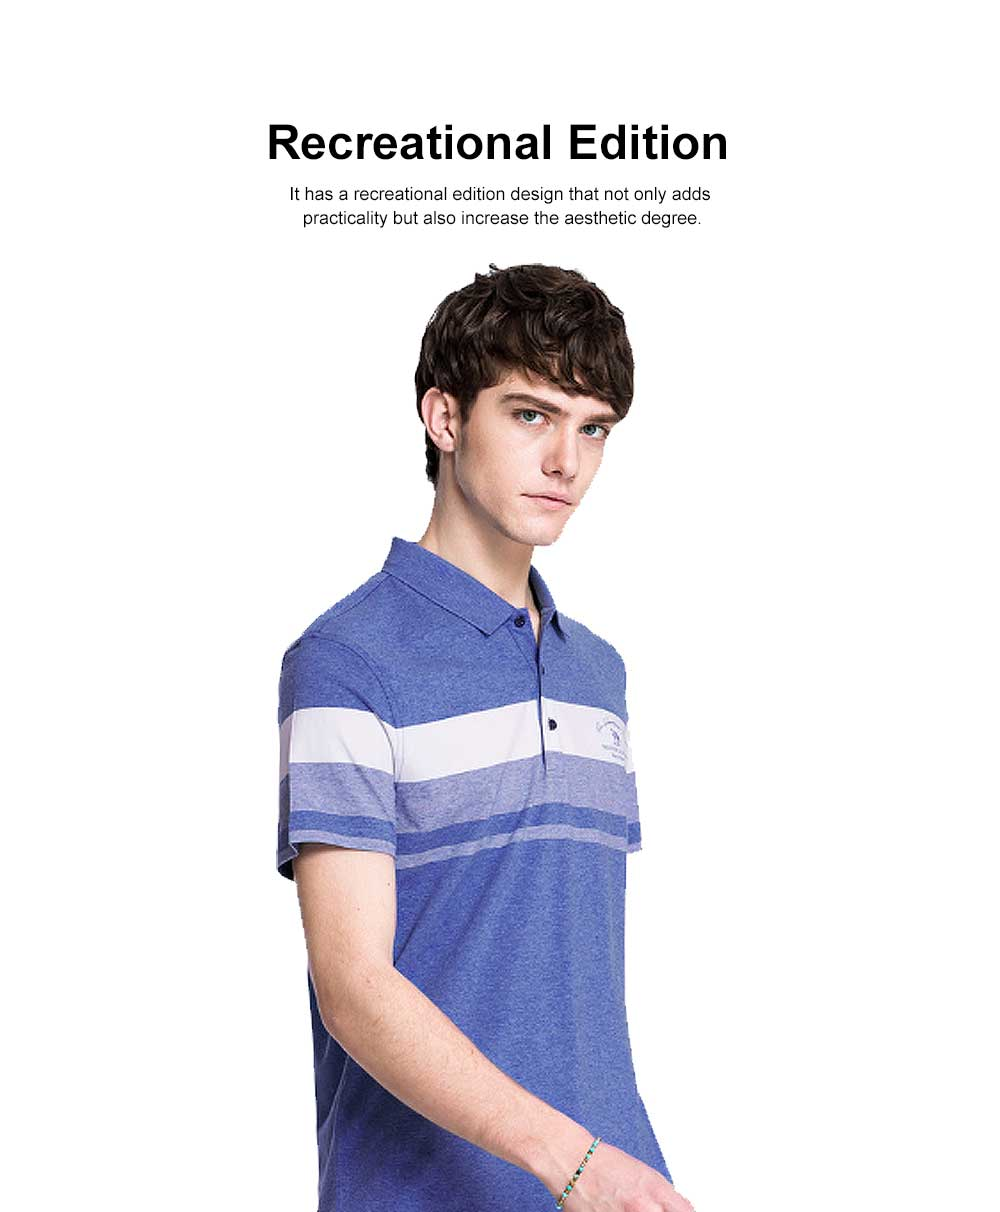 Cool Contrast Tops for Men, Recreational Edition Short-sleeve Polo, Breathable Spandex Cotton T-shirt 2